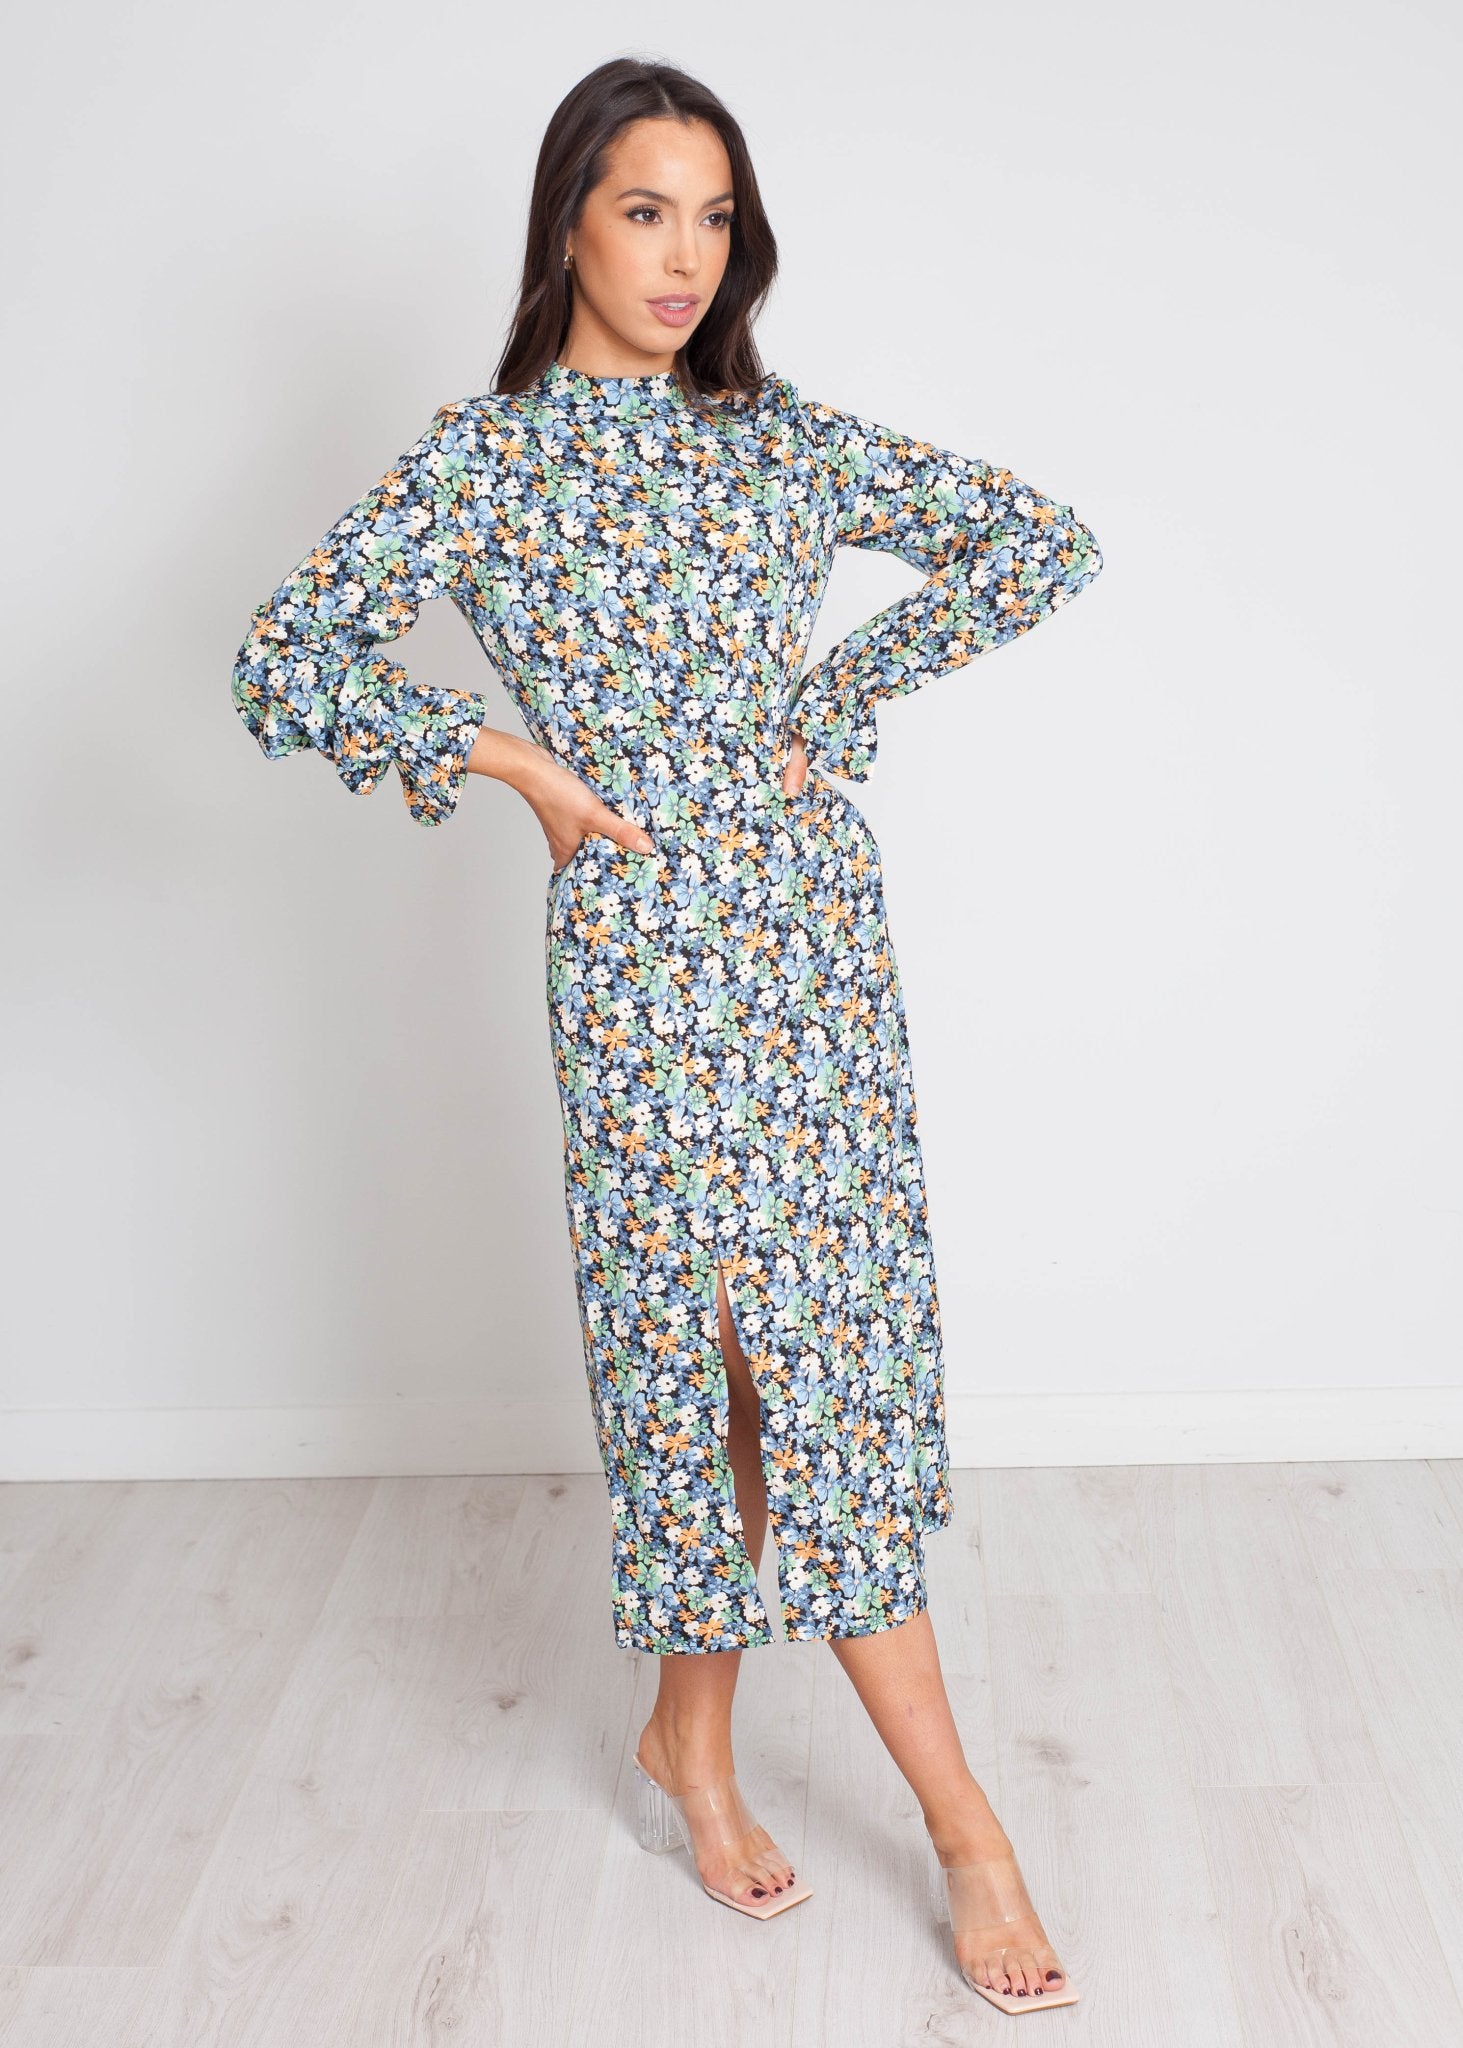 Freya Floral Midi Dress In Blue Mix - The Walk in Wardrobe